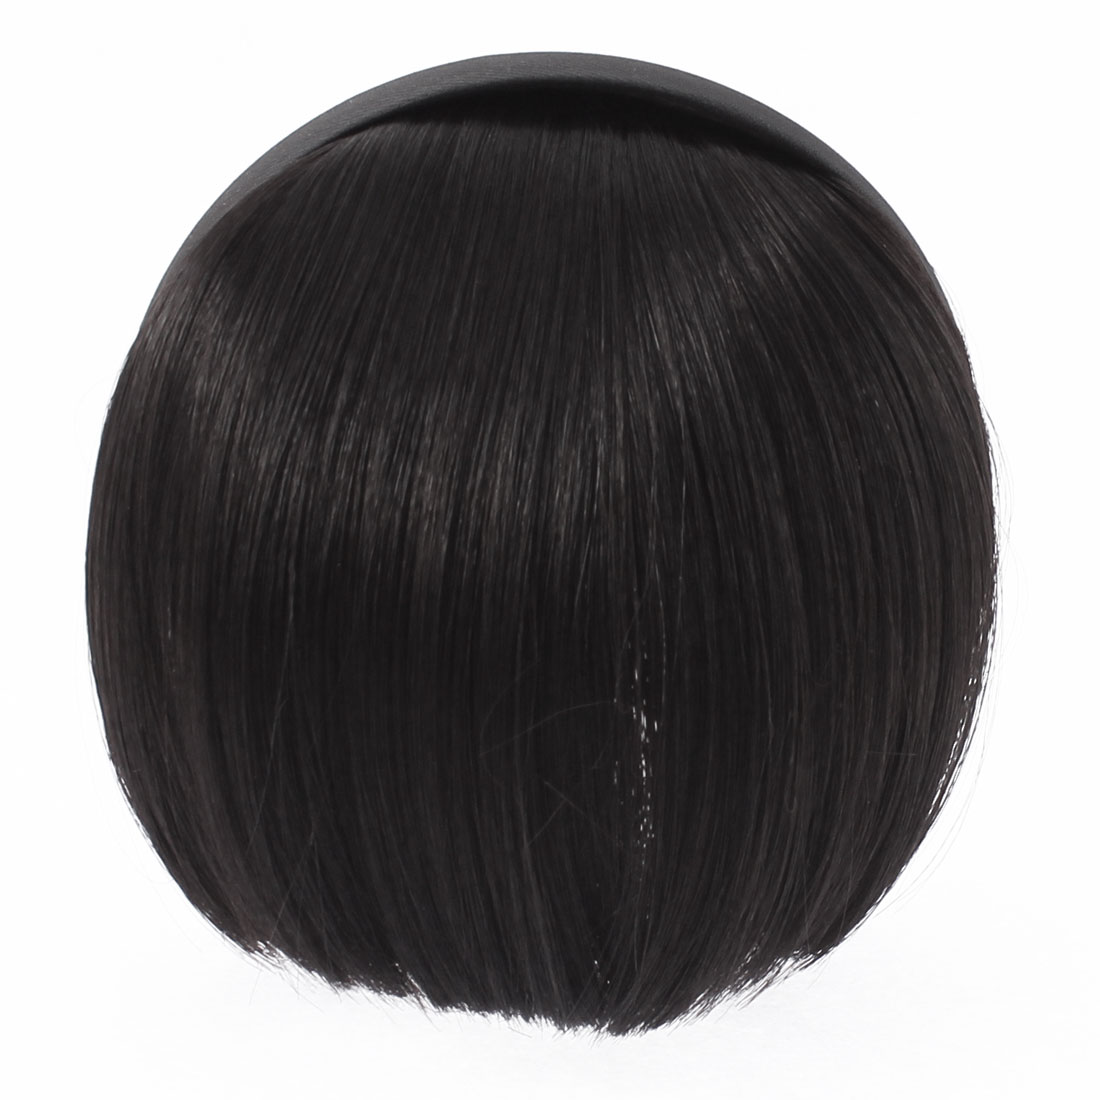 Invisible Traceless Neat Extension False Bangs Wig Piece Hair Clasp Black